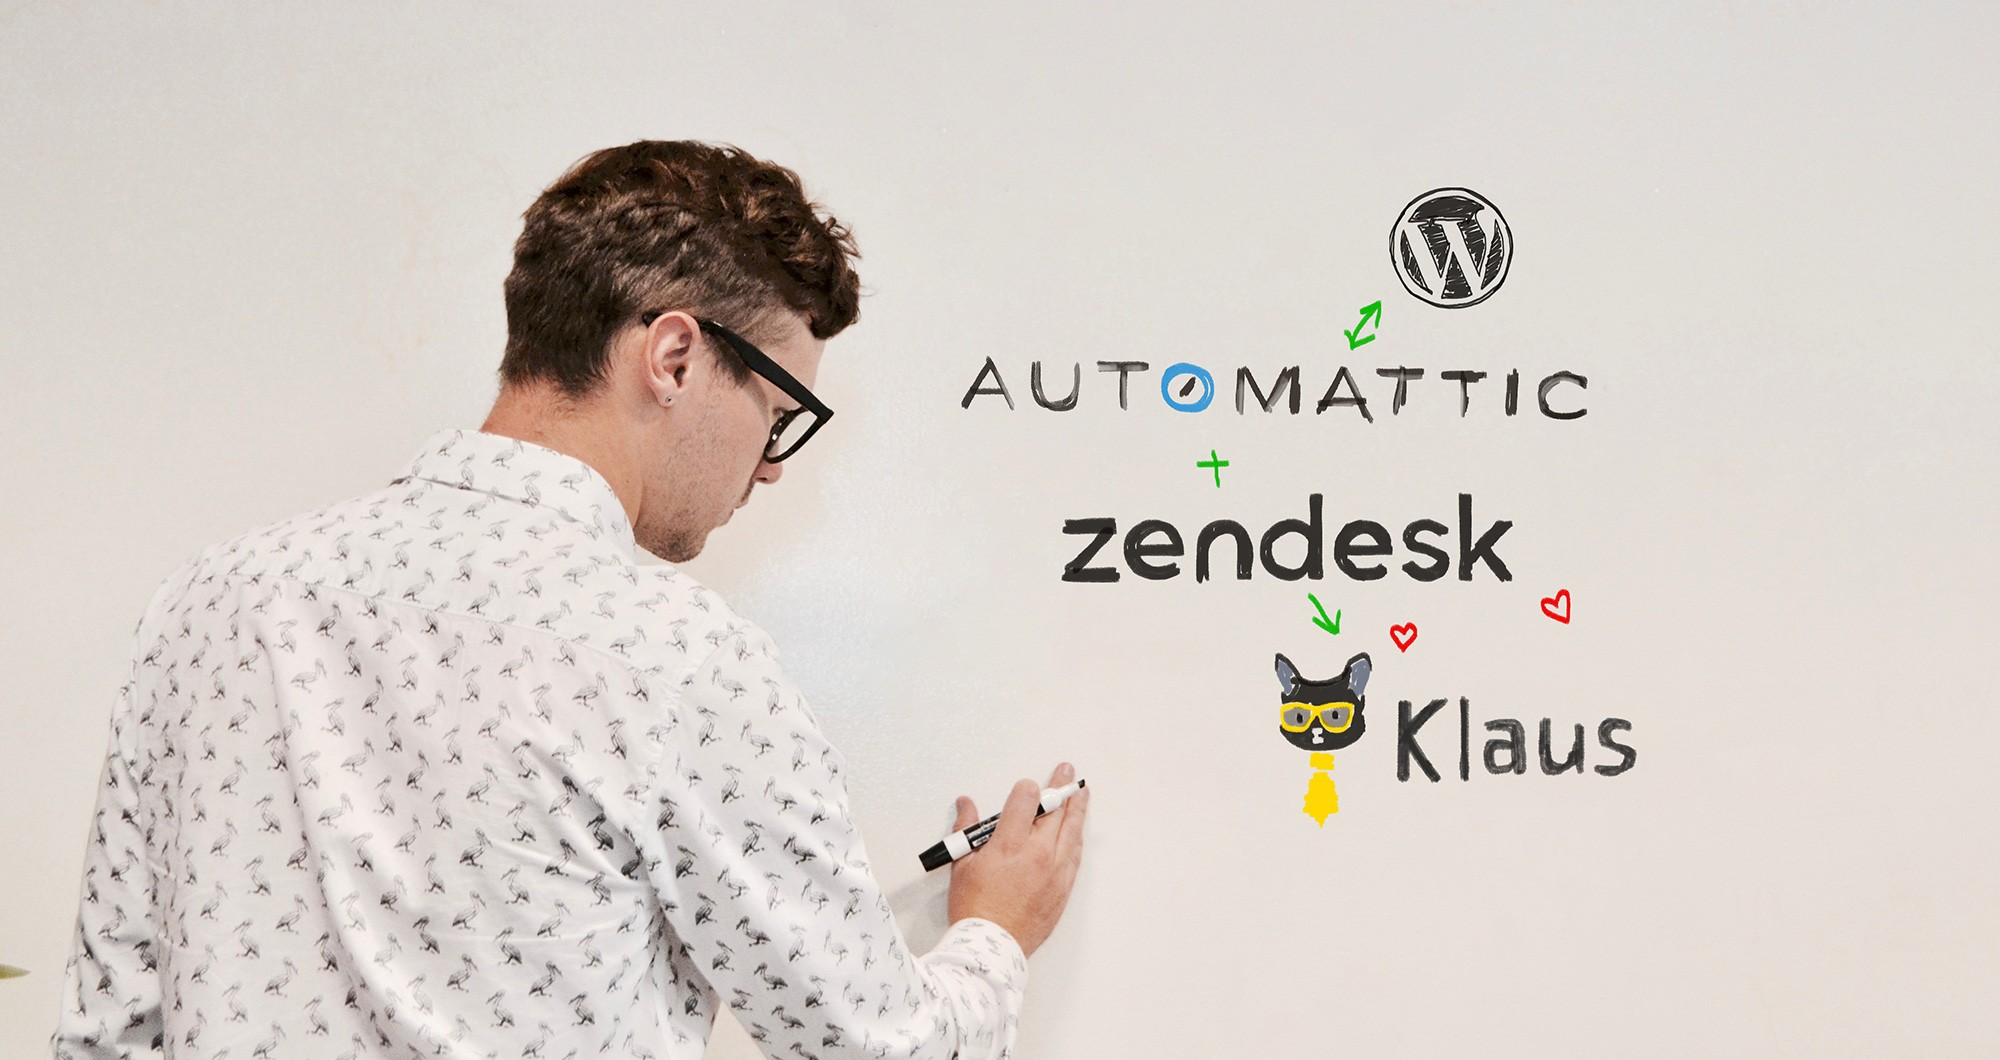 How Automattic fosters a culture of feedback with Klaus and Zendesk